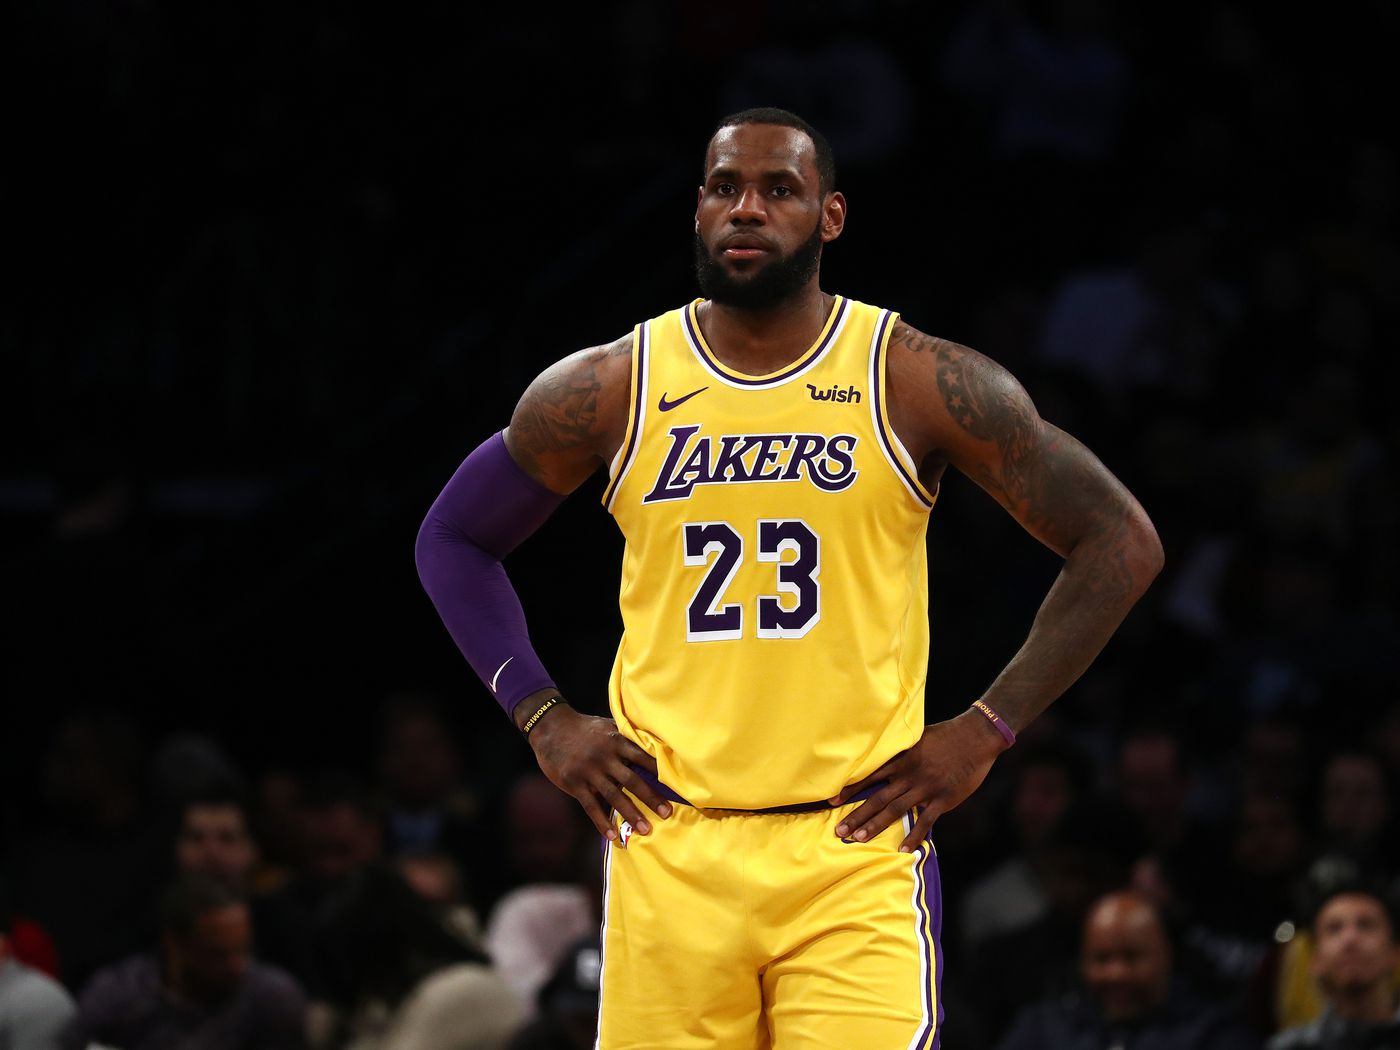 ad66119e588 Why LeBron James   Jewish money  Instagram post is troubling - SBNation.com